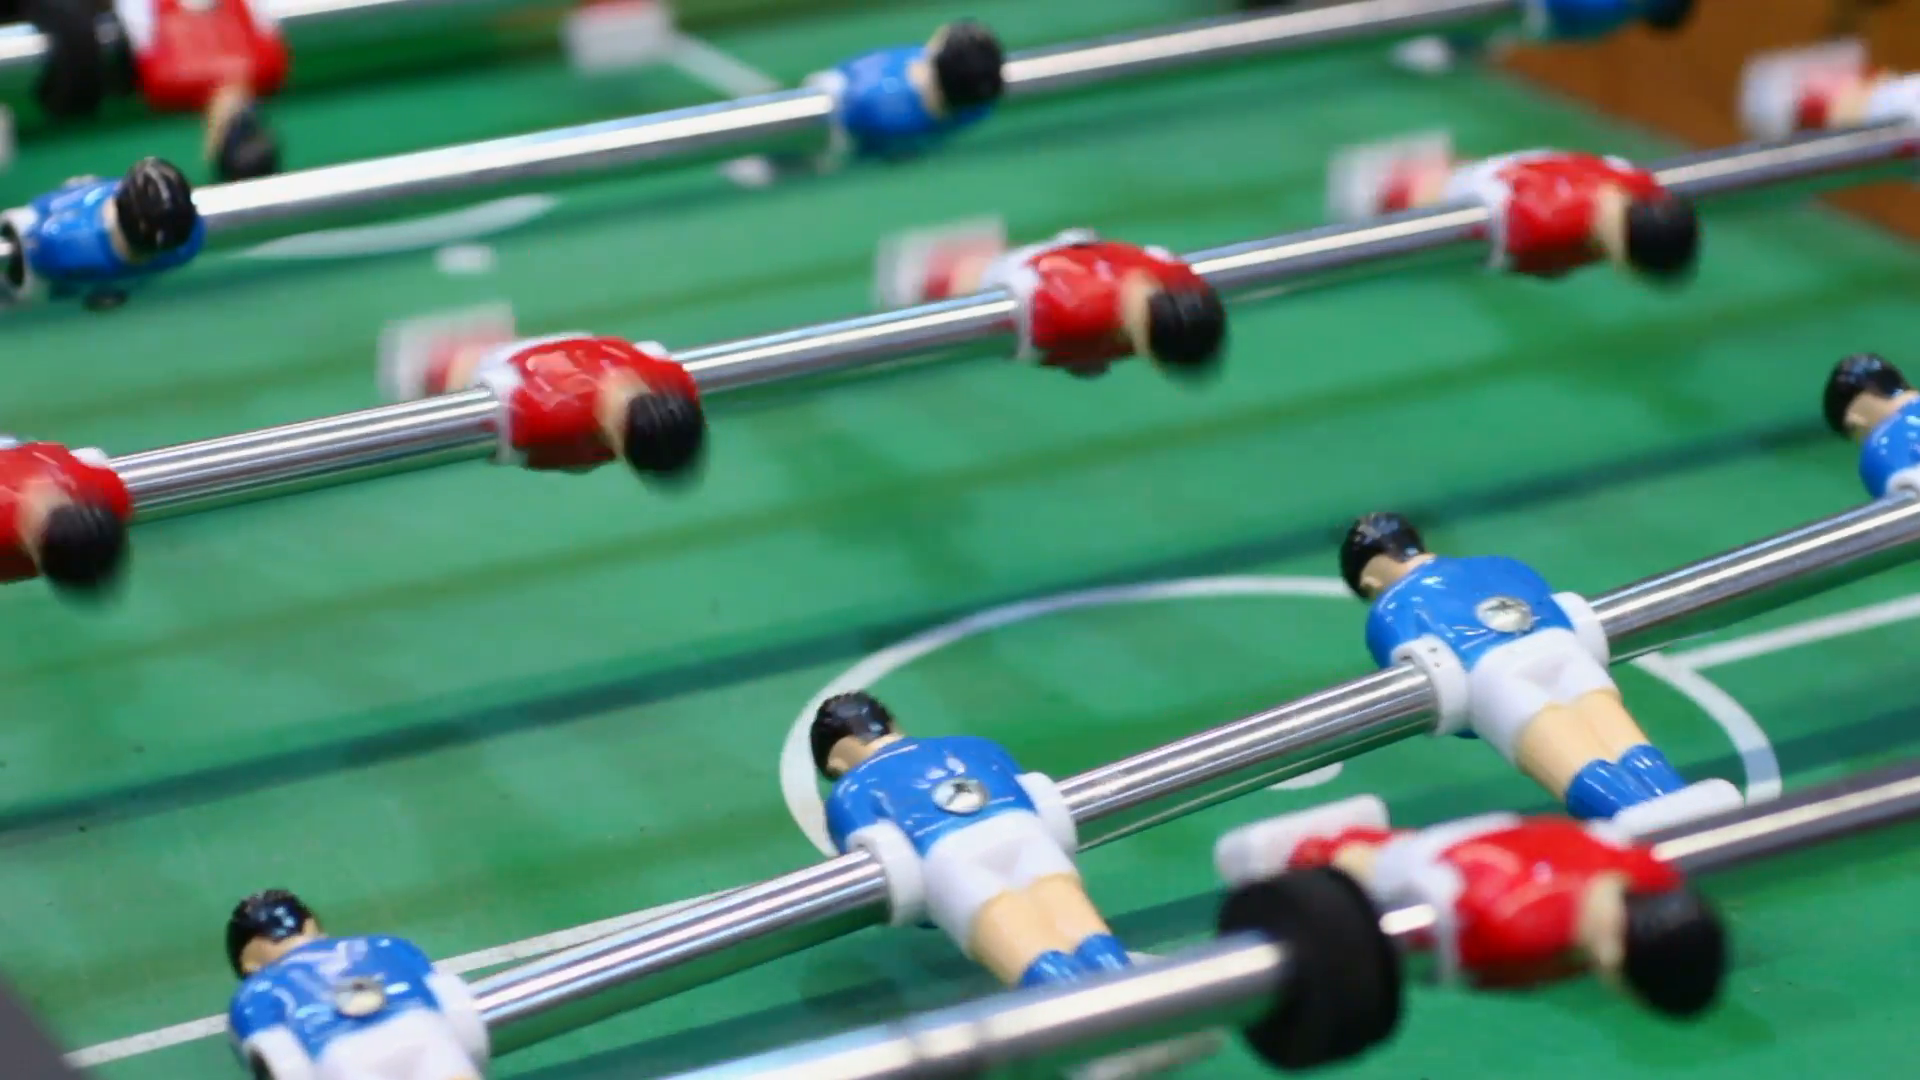 table-football-plastic-figures-of-soccer-players-moving-on-foosball-field-pub_s2u4spcu_f0000.png